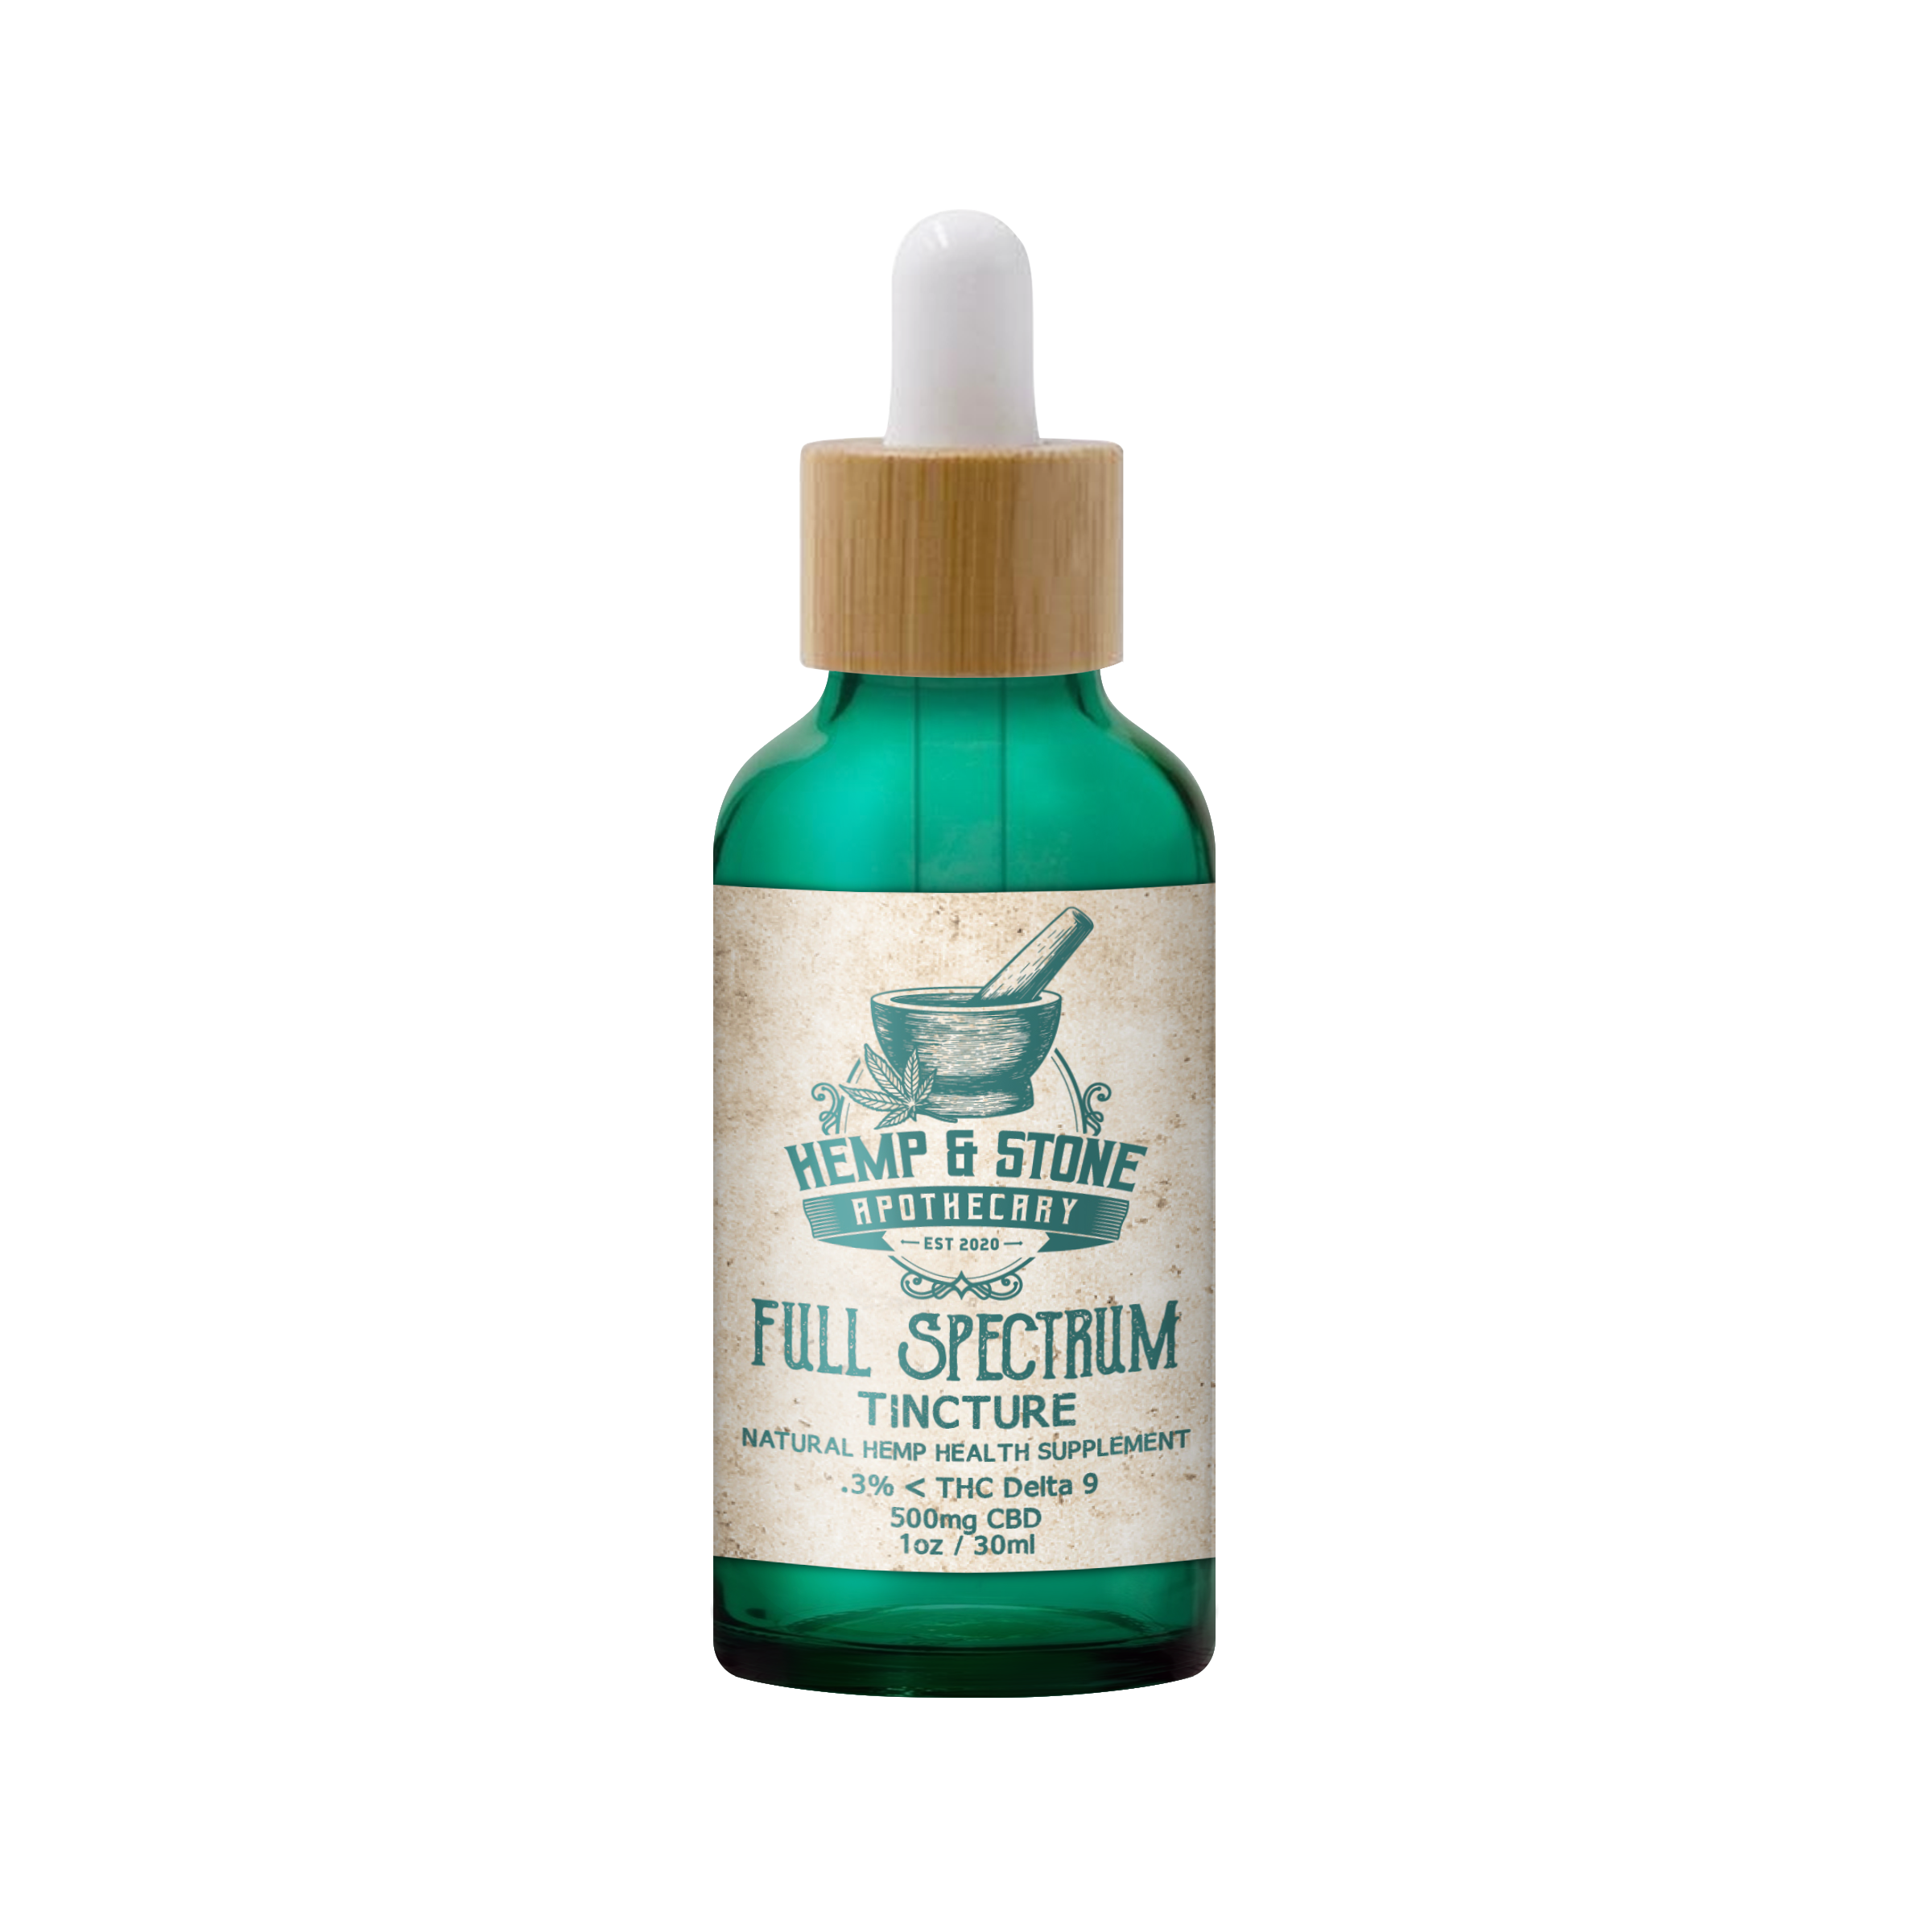 Hemp & Stone Apothecary Full Spectrum CBD Tincture 500mg